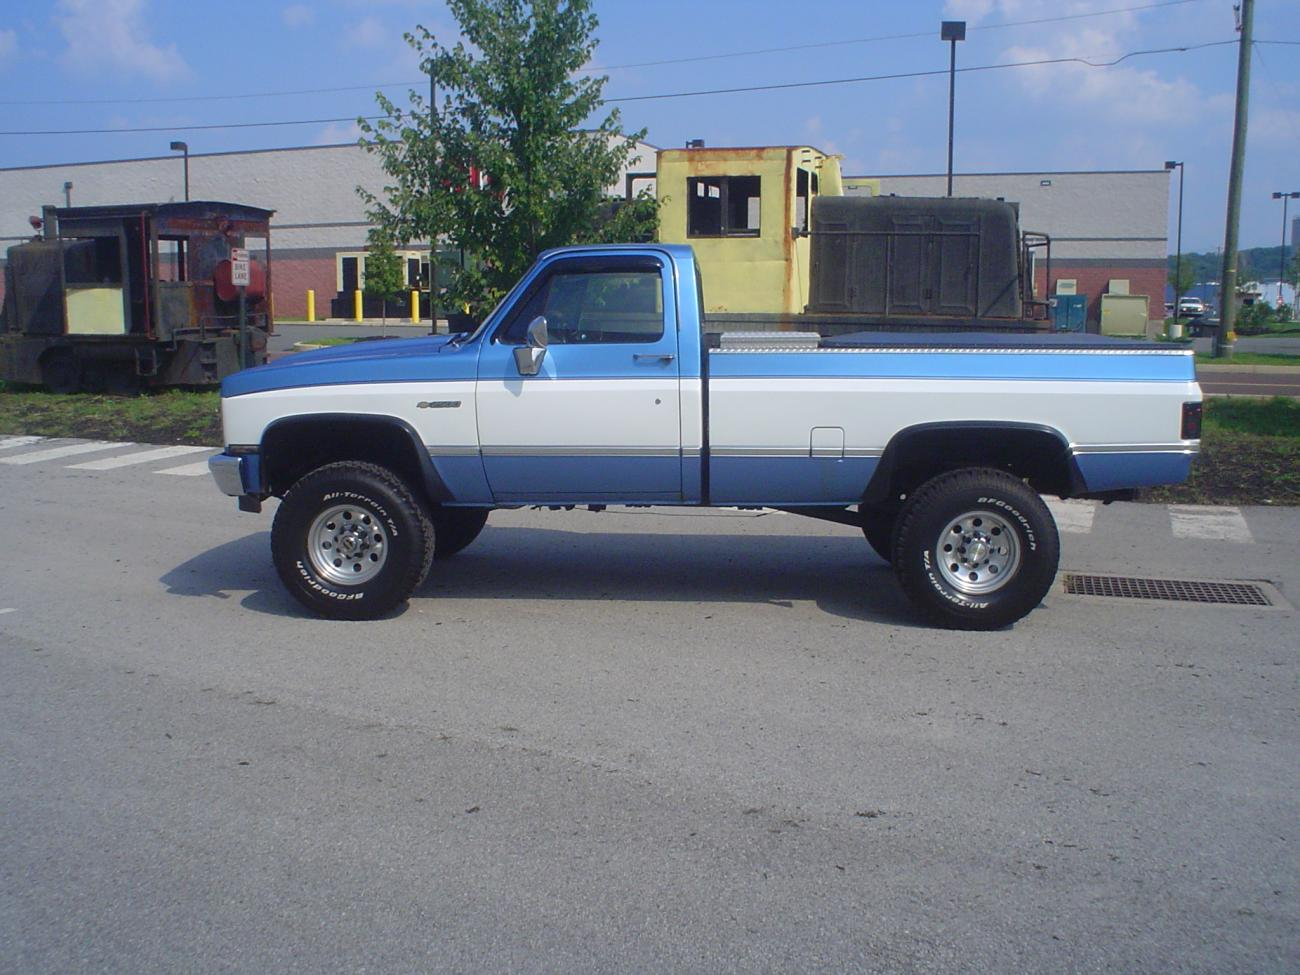 84 Chevy 2500 Silverado 4x4 With Tpi 350 And Nv4500 5